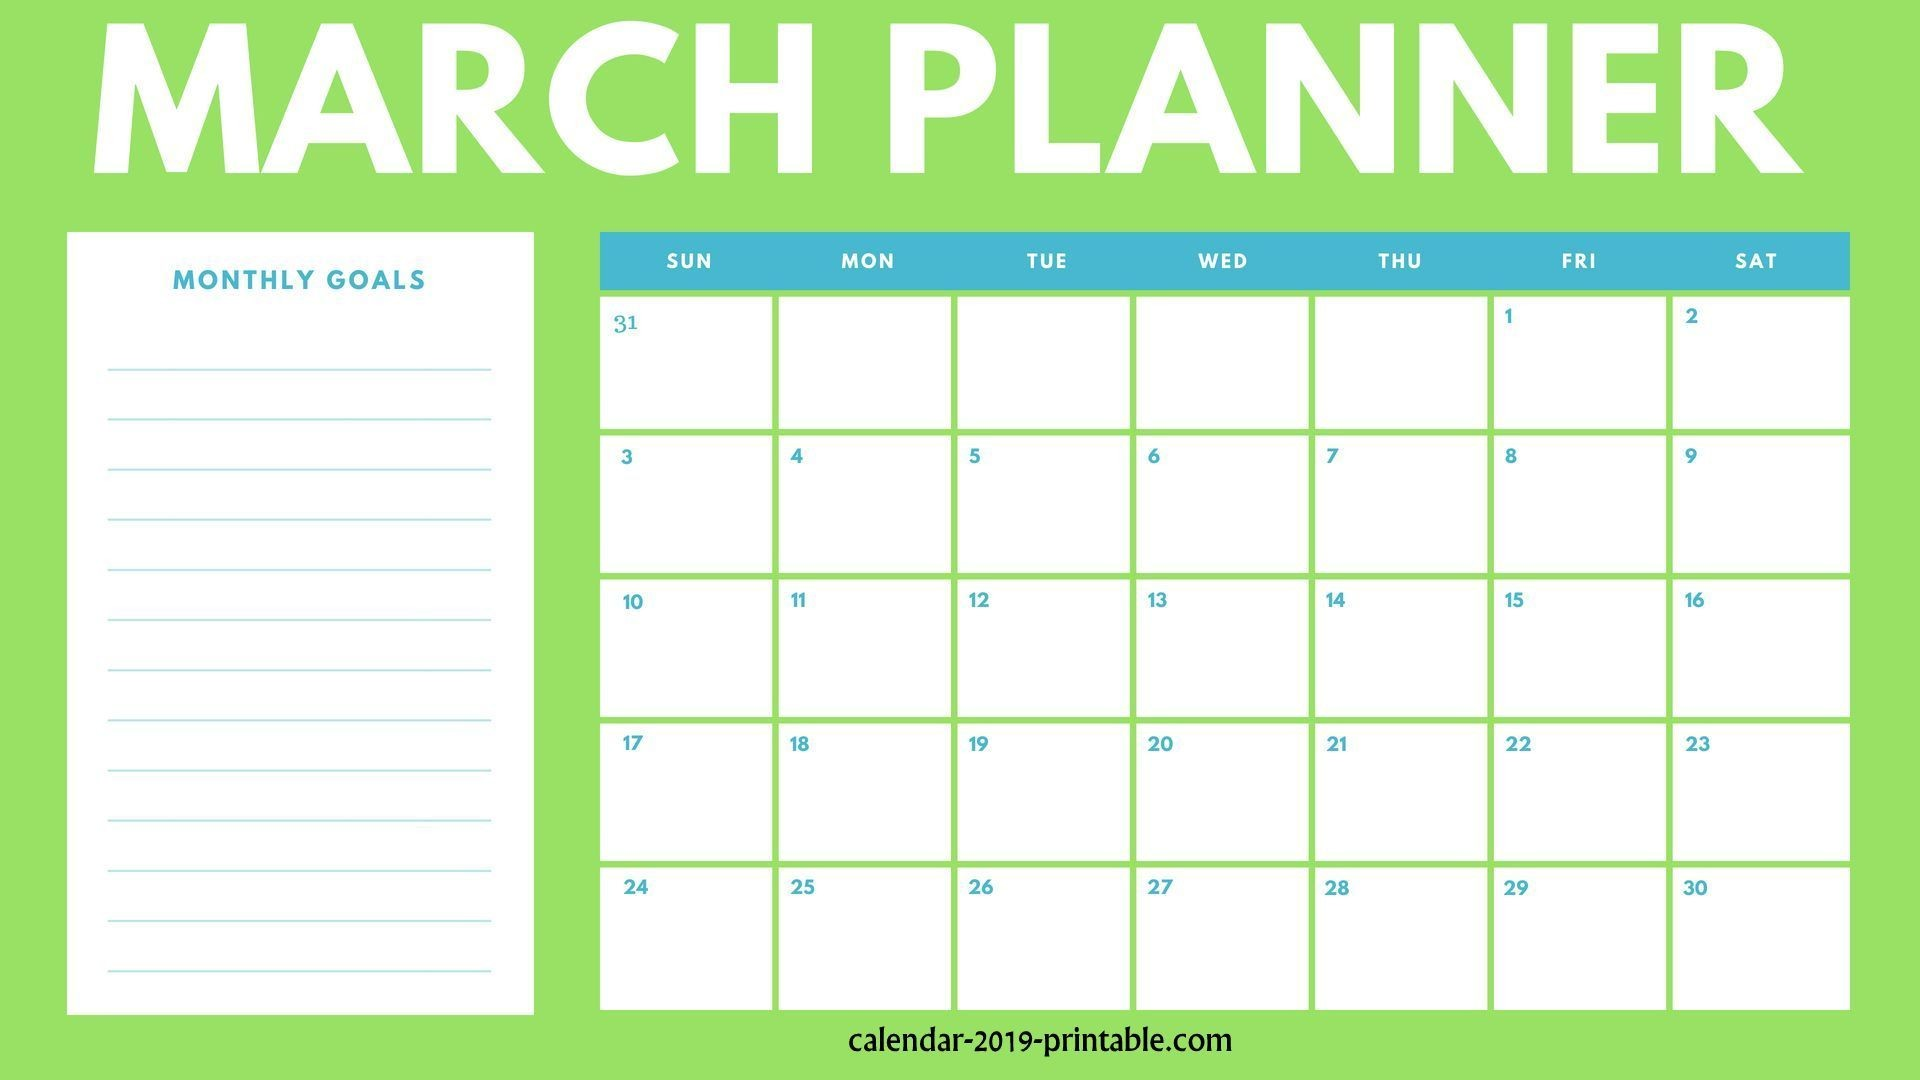 march 2019 planner monthly calendar monthly planners calendar